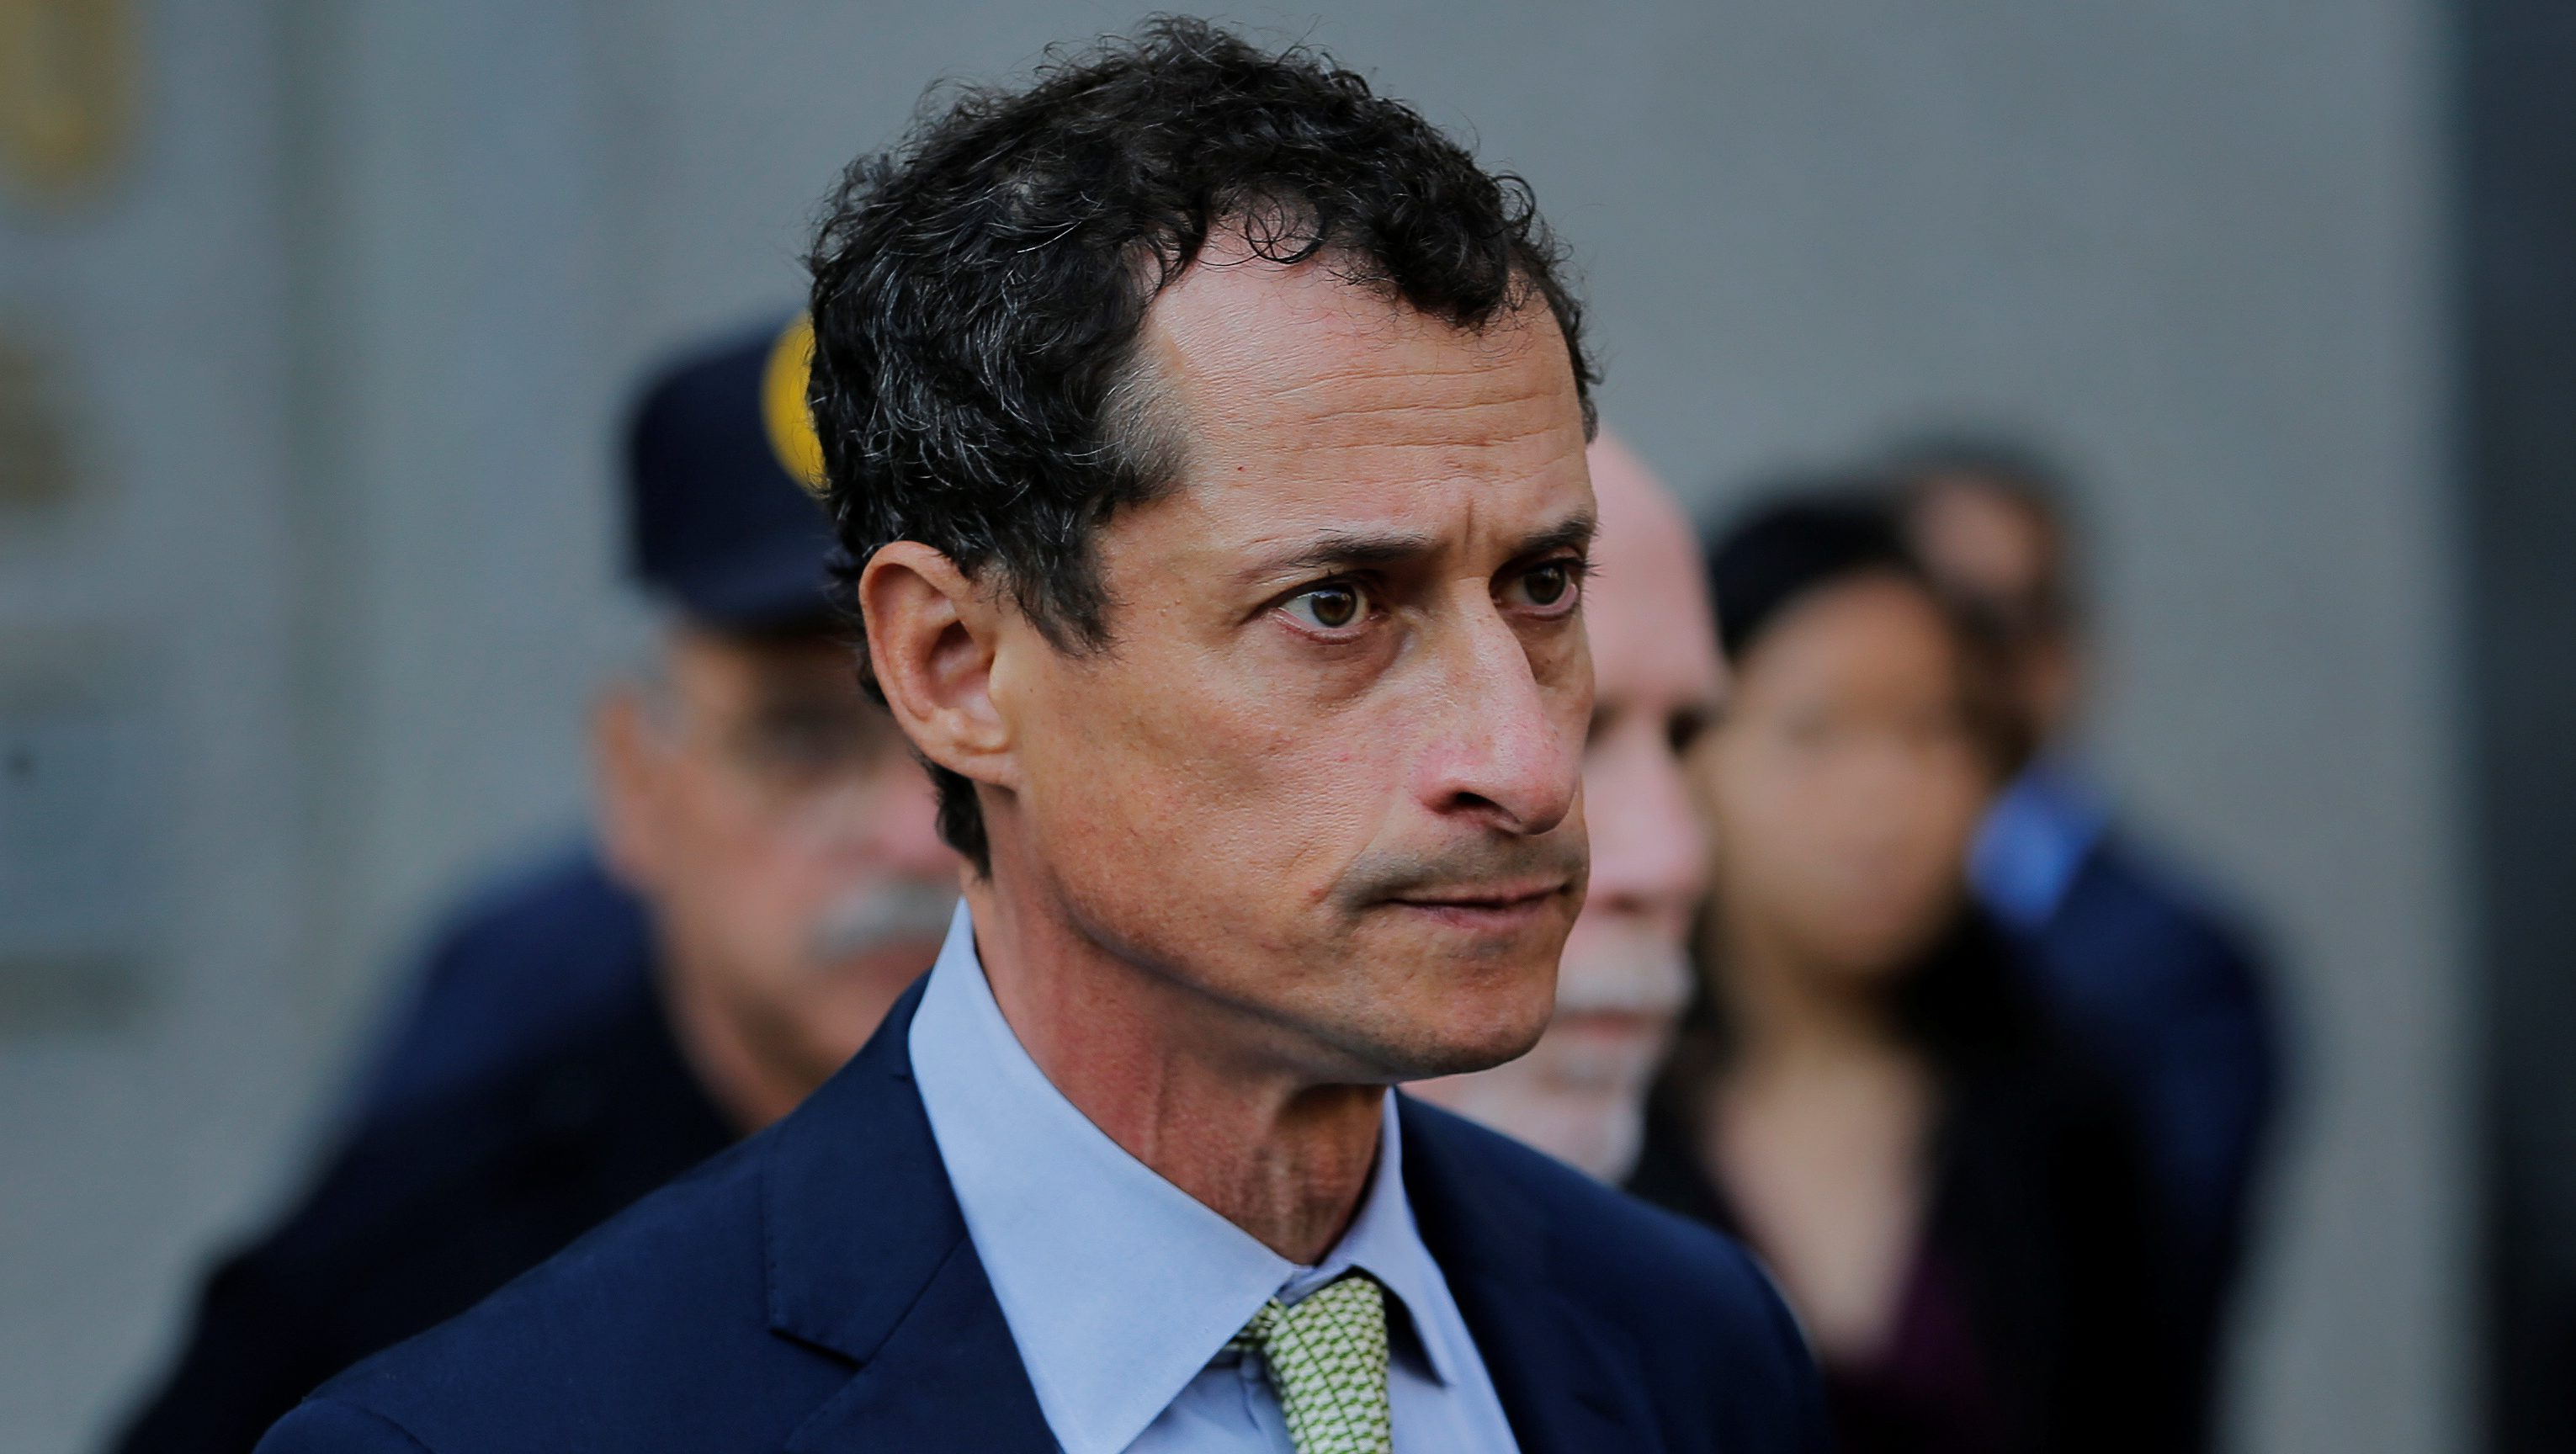 """Former U.S. Congressman Anthony Weiner departs U.S. Federal Court, following his sentencing after pleading guilty to one count of sending obscene messages to a minor, ending an investigation into a """"sexting"""" scandal that played a role in last year's U.S. presidential election, in New York, U.S.,September 25, 2017. REUTERS/Lucas Jackson - RC147ED64C00"""